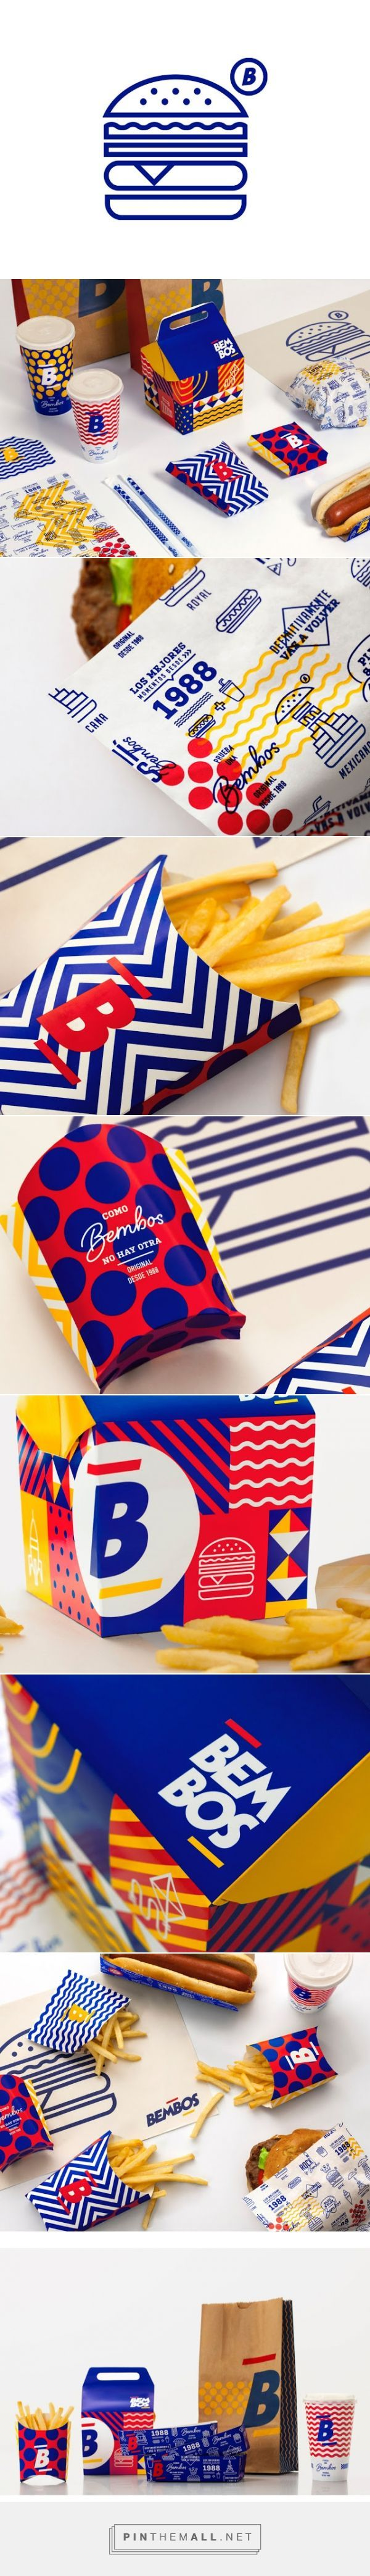 Bembos. http://www.arcreactions.com More